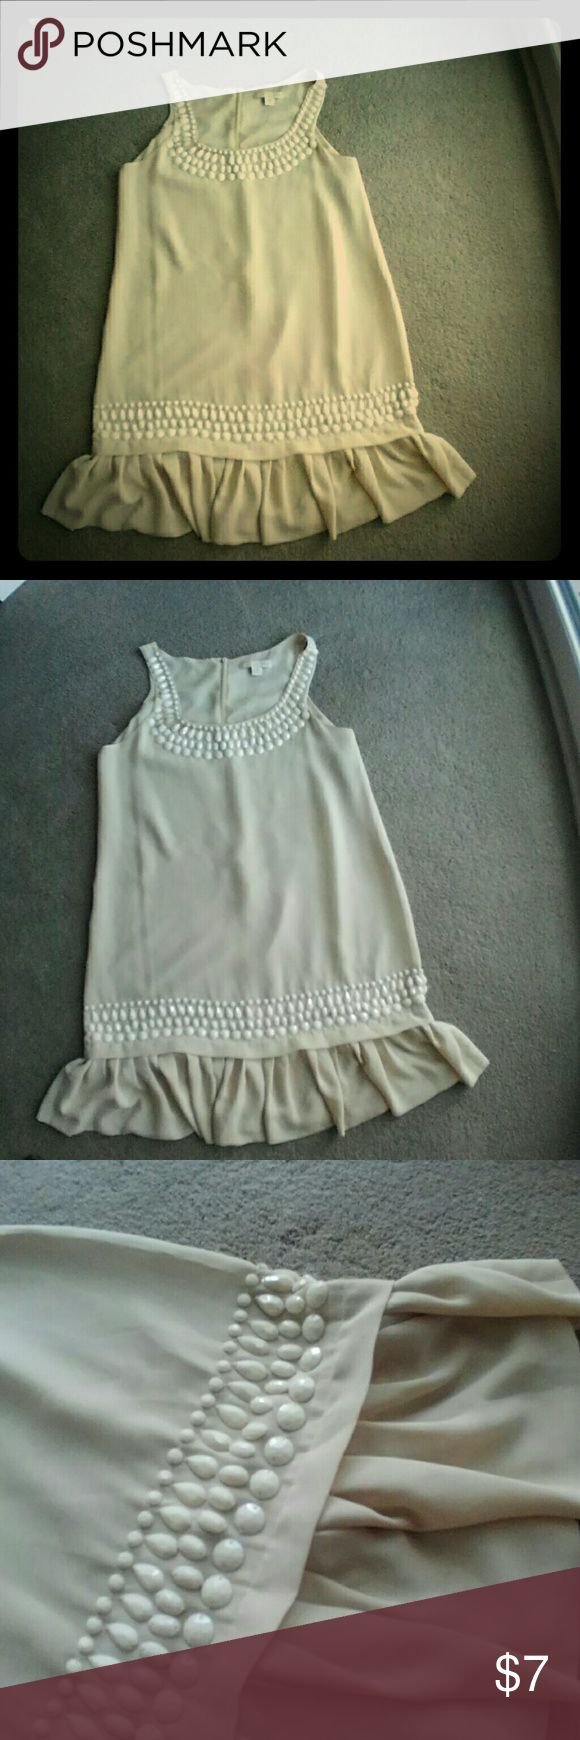 H&M flapper dress M Cream colored dress with plastic bead details.  Great for going out, dress you with a cute pair of Mary Jane heels. Worn once EUC. H&M Dresses Mini